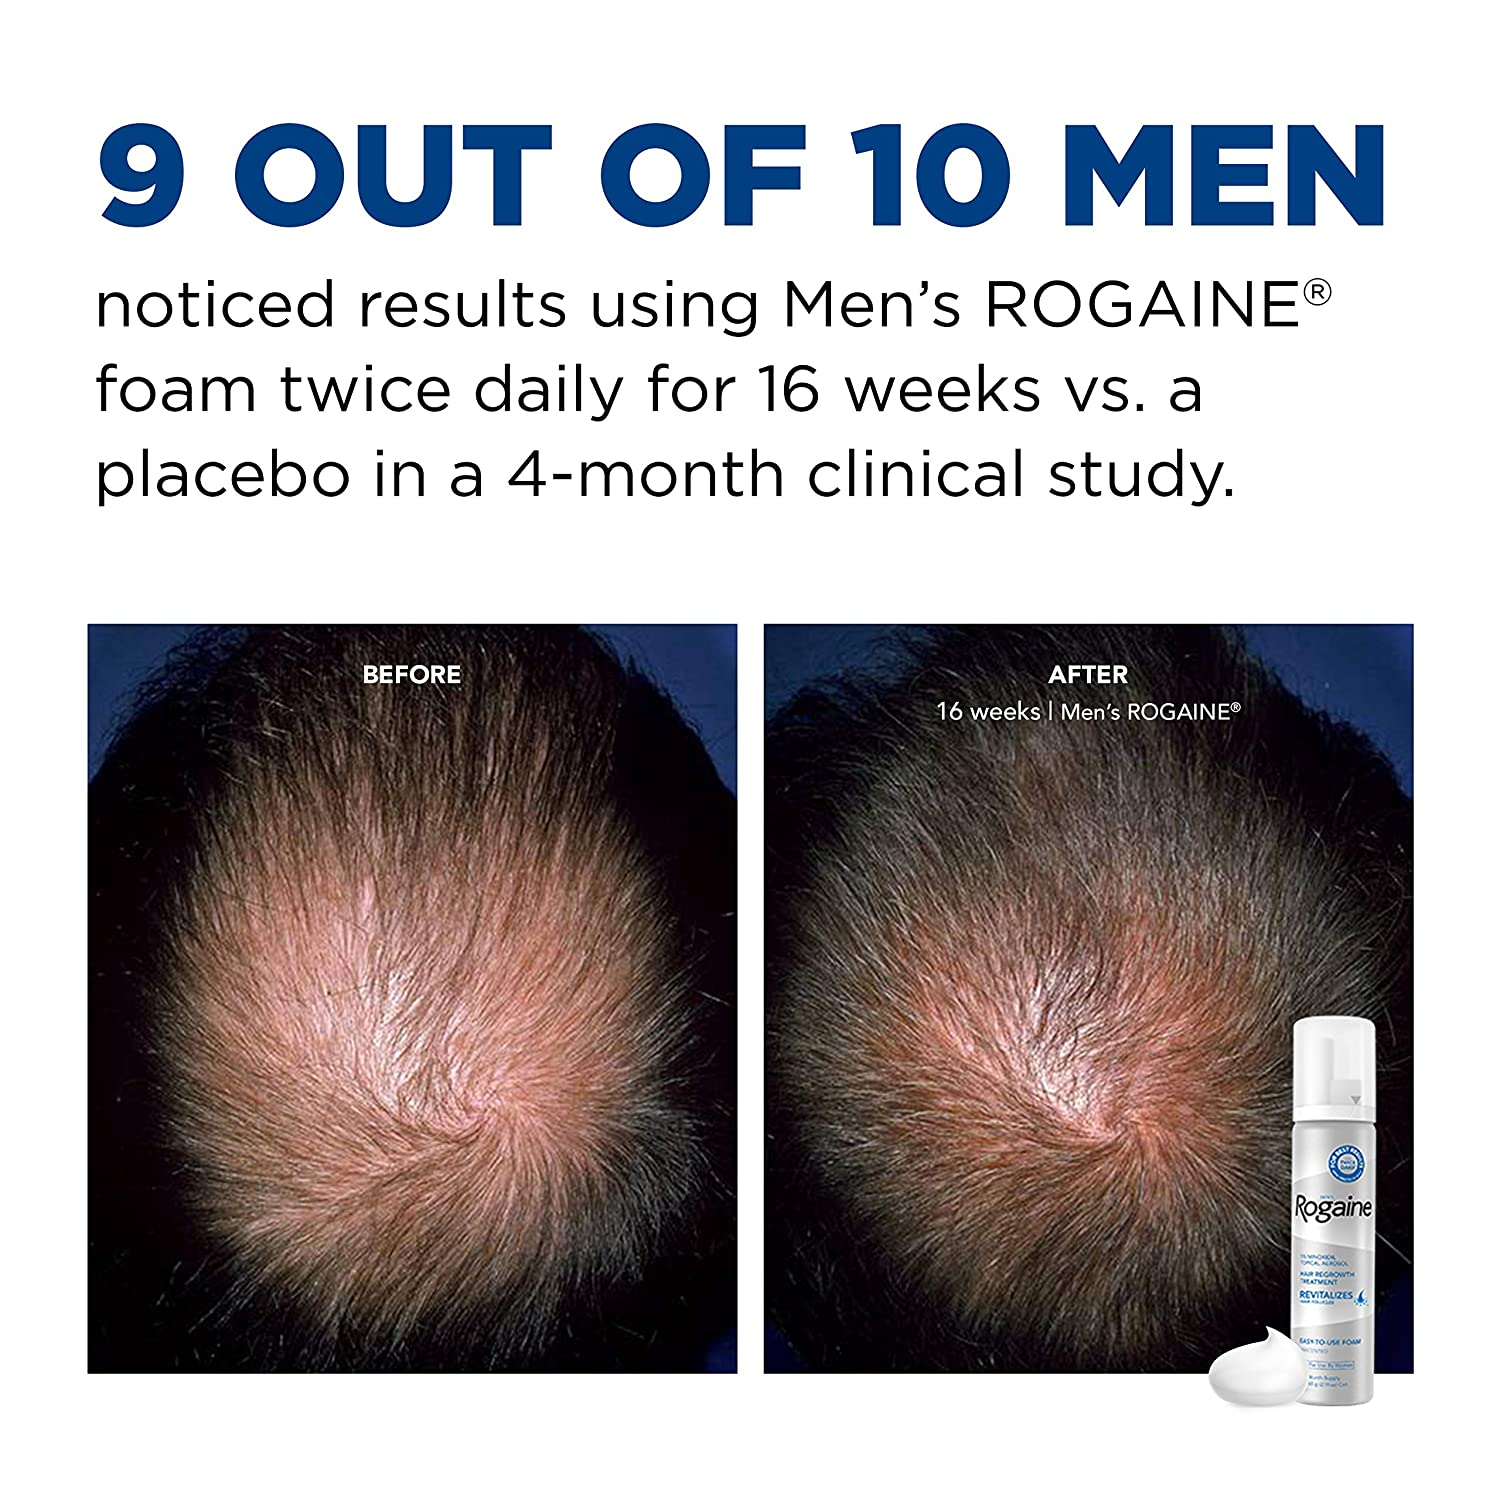 Men's Rogaine 5% Minoxidil Foam for Hair Loss and Hair Regrowth, Topical Treatment for Thinning Hair, 3-Month Supply, 2.11 Ounce (Pack of 3) : Beauty